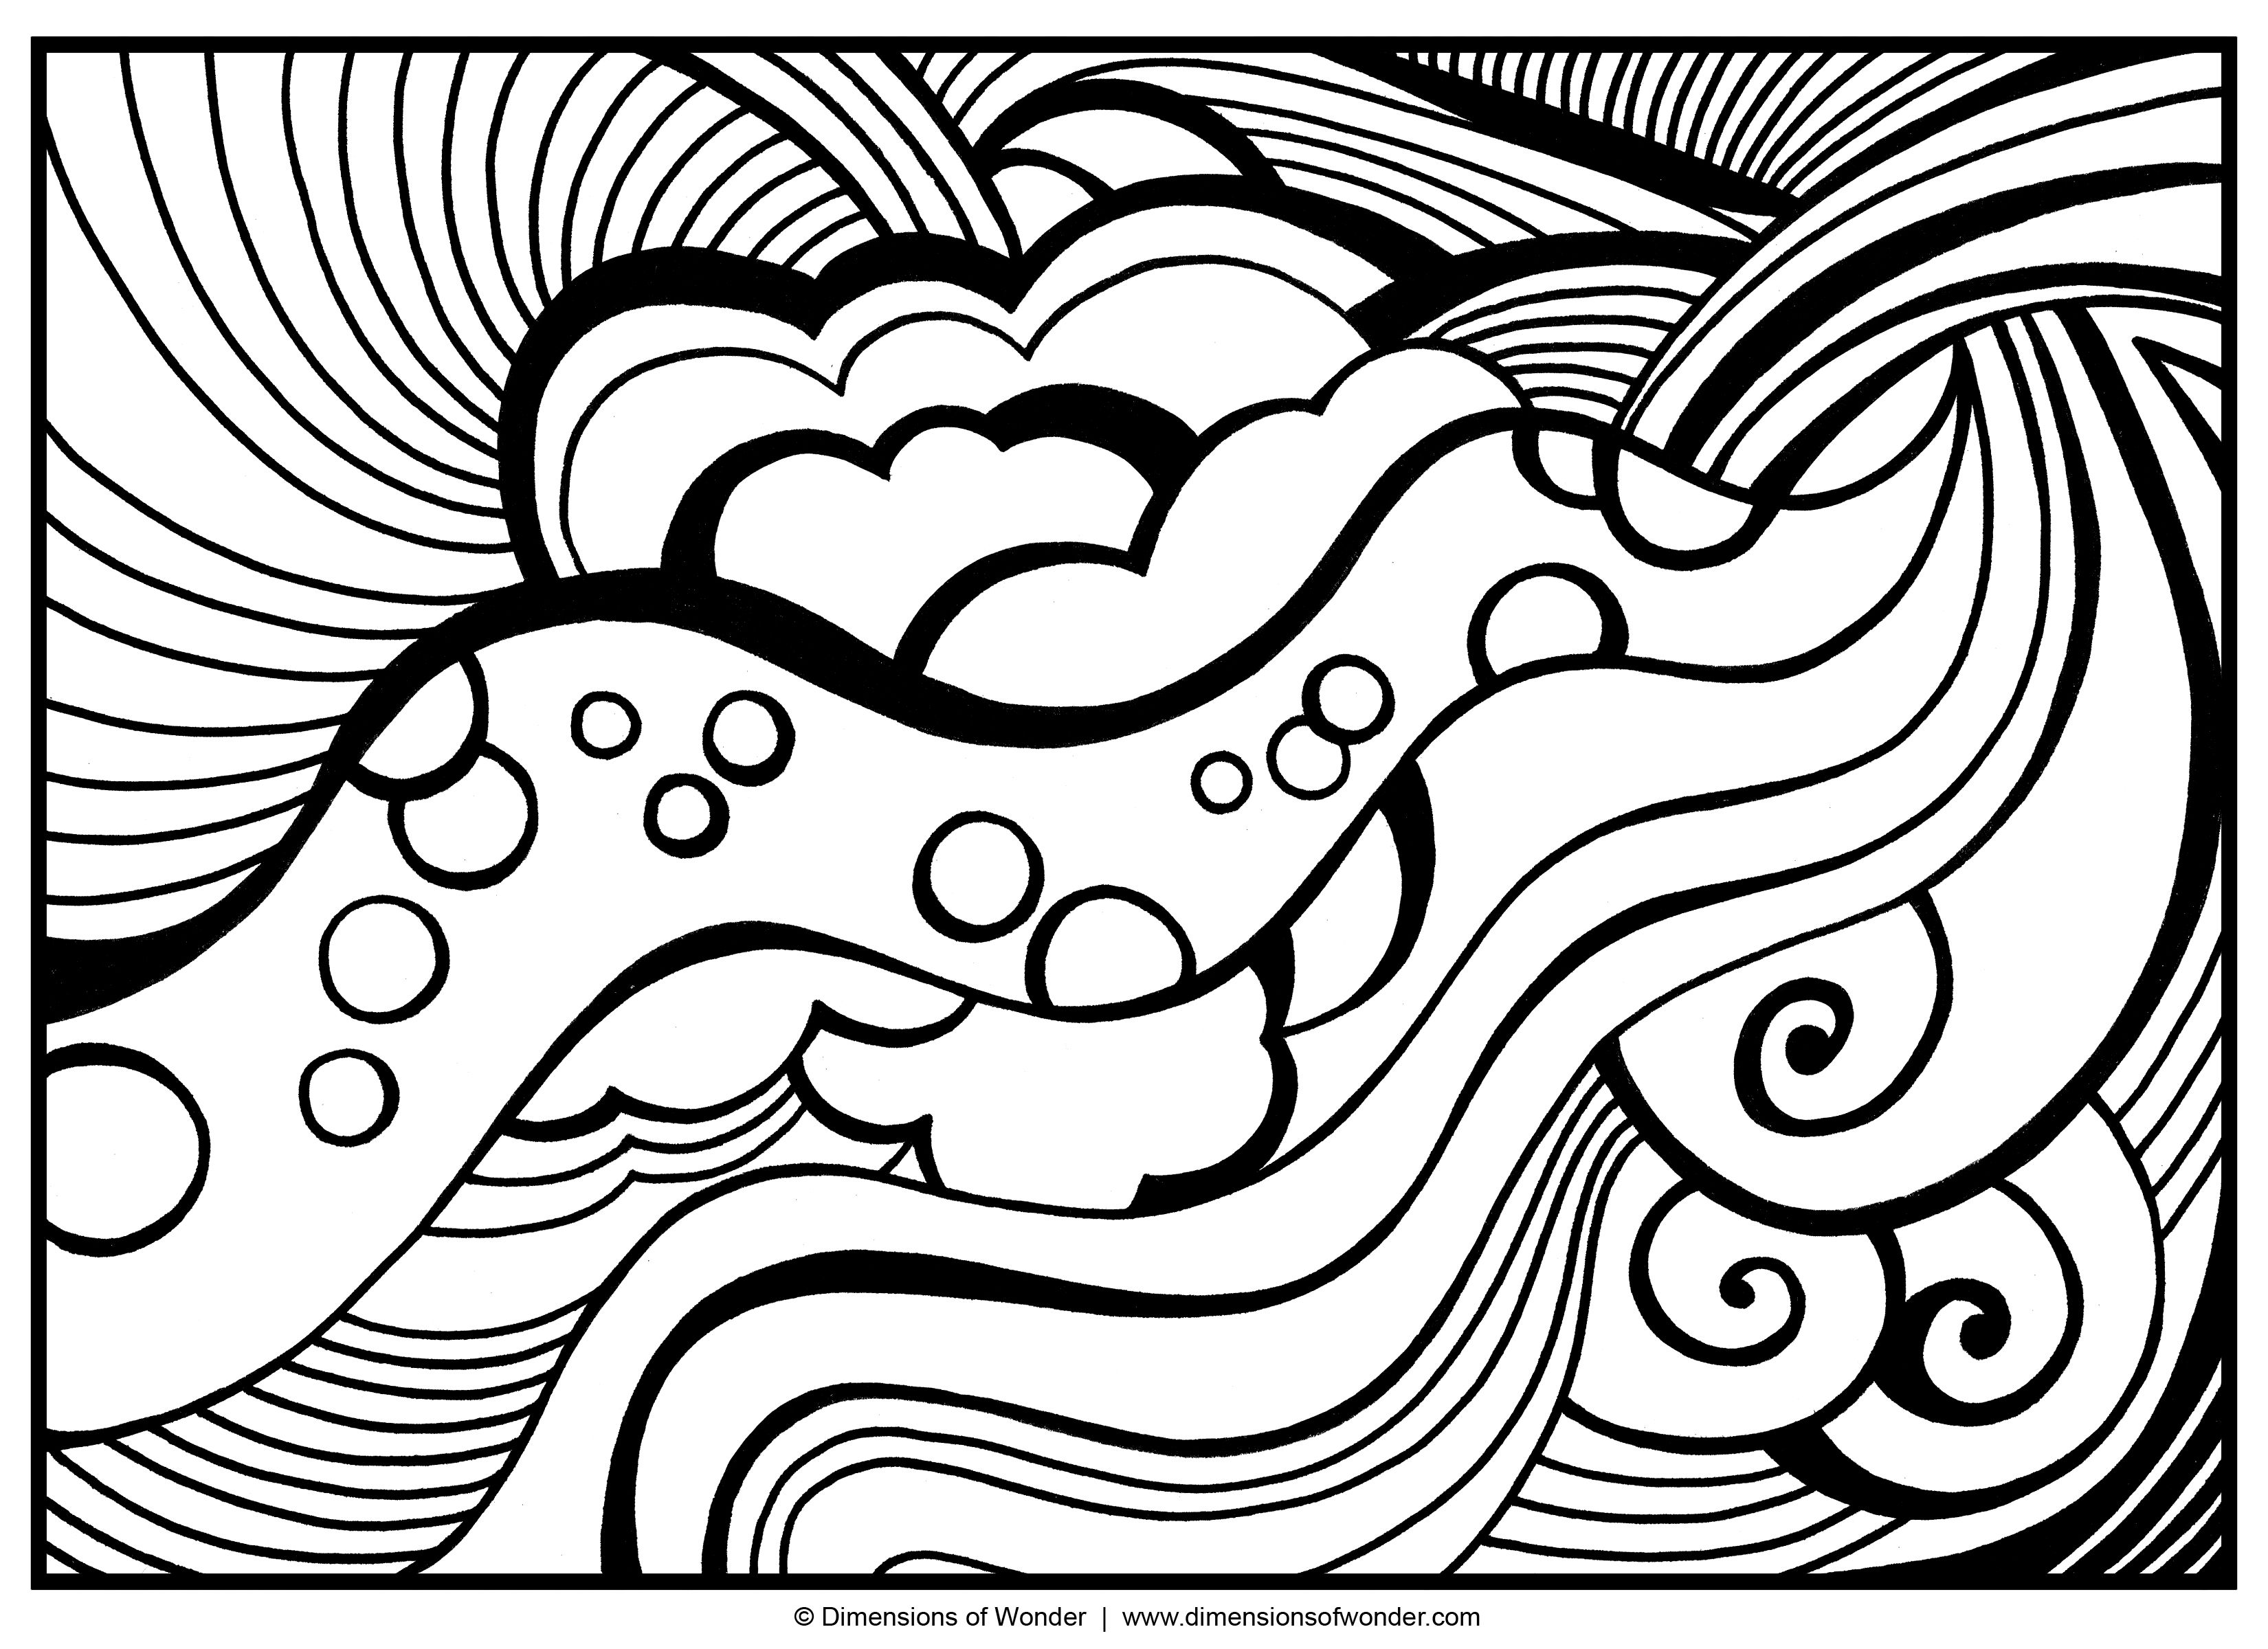 Abstract coloring pages free large images recipes Easy coloring books for adults